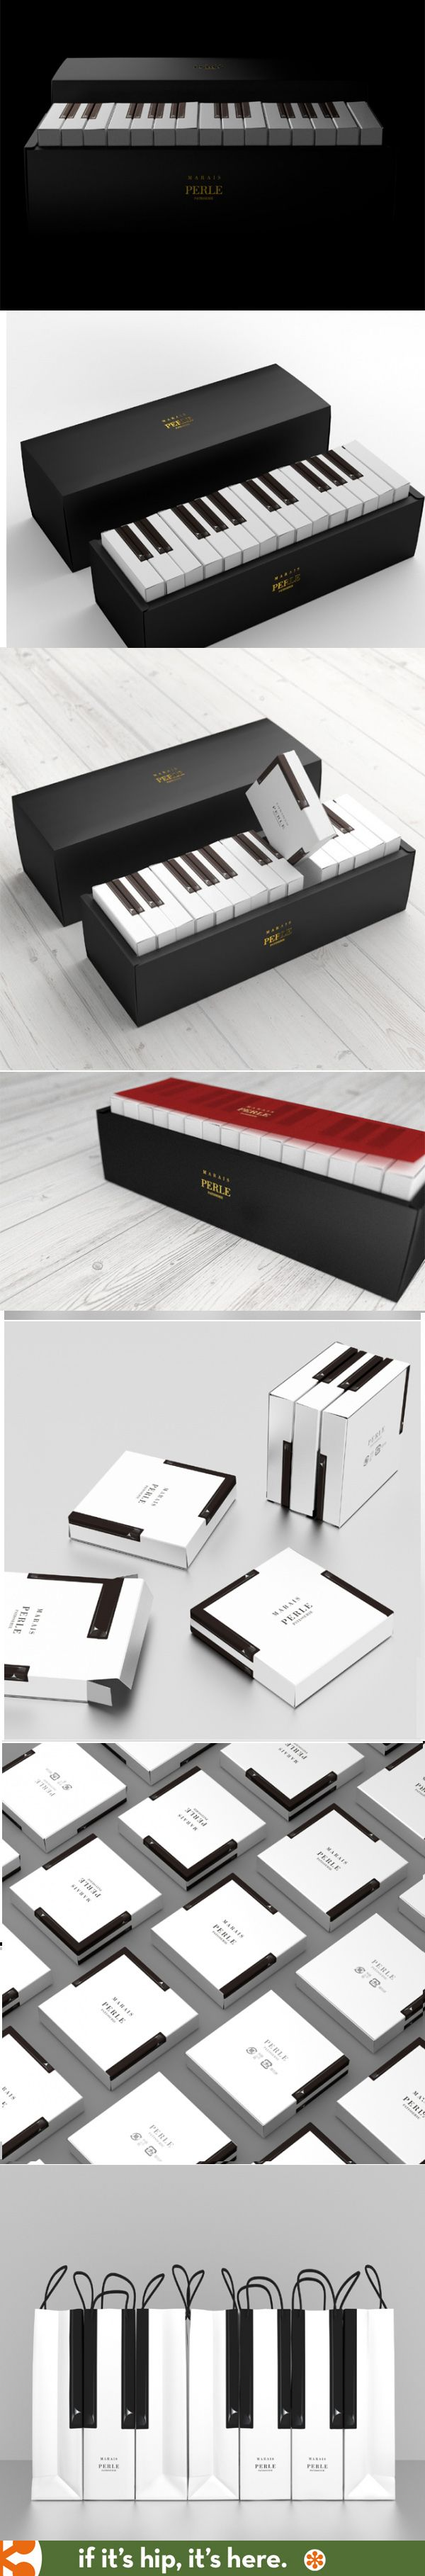 "Latona Marketing designed this ""Piano Package"" containing baked goods from…"